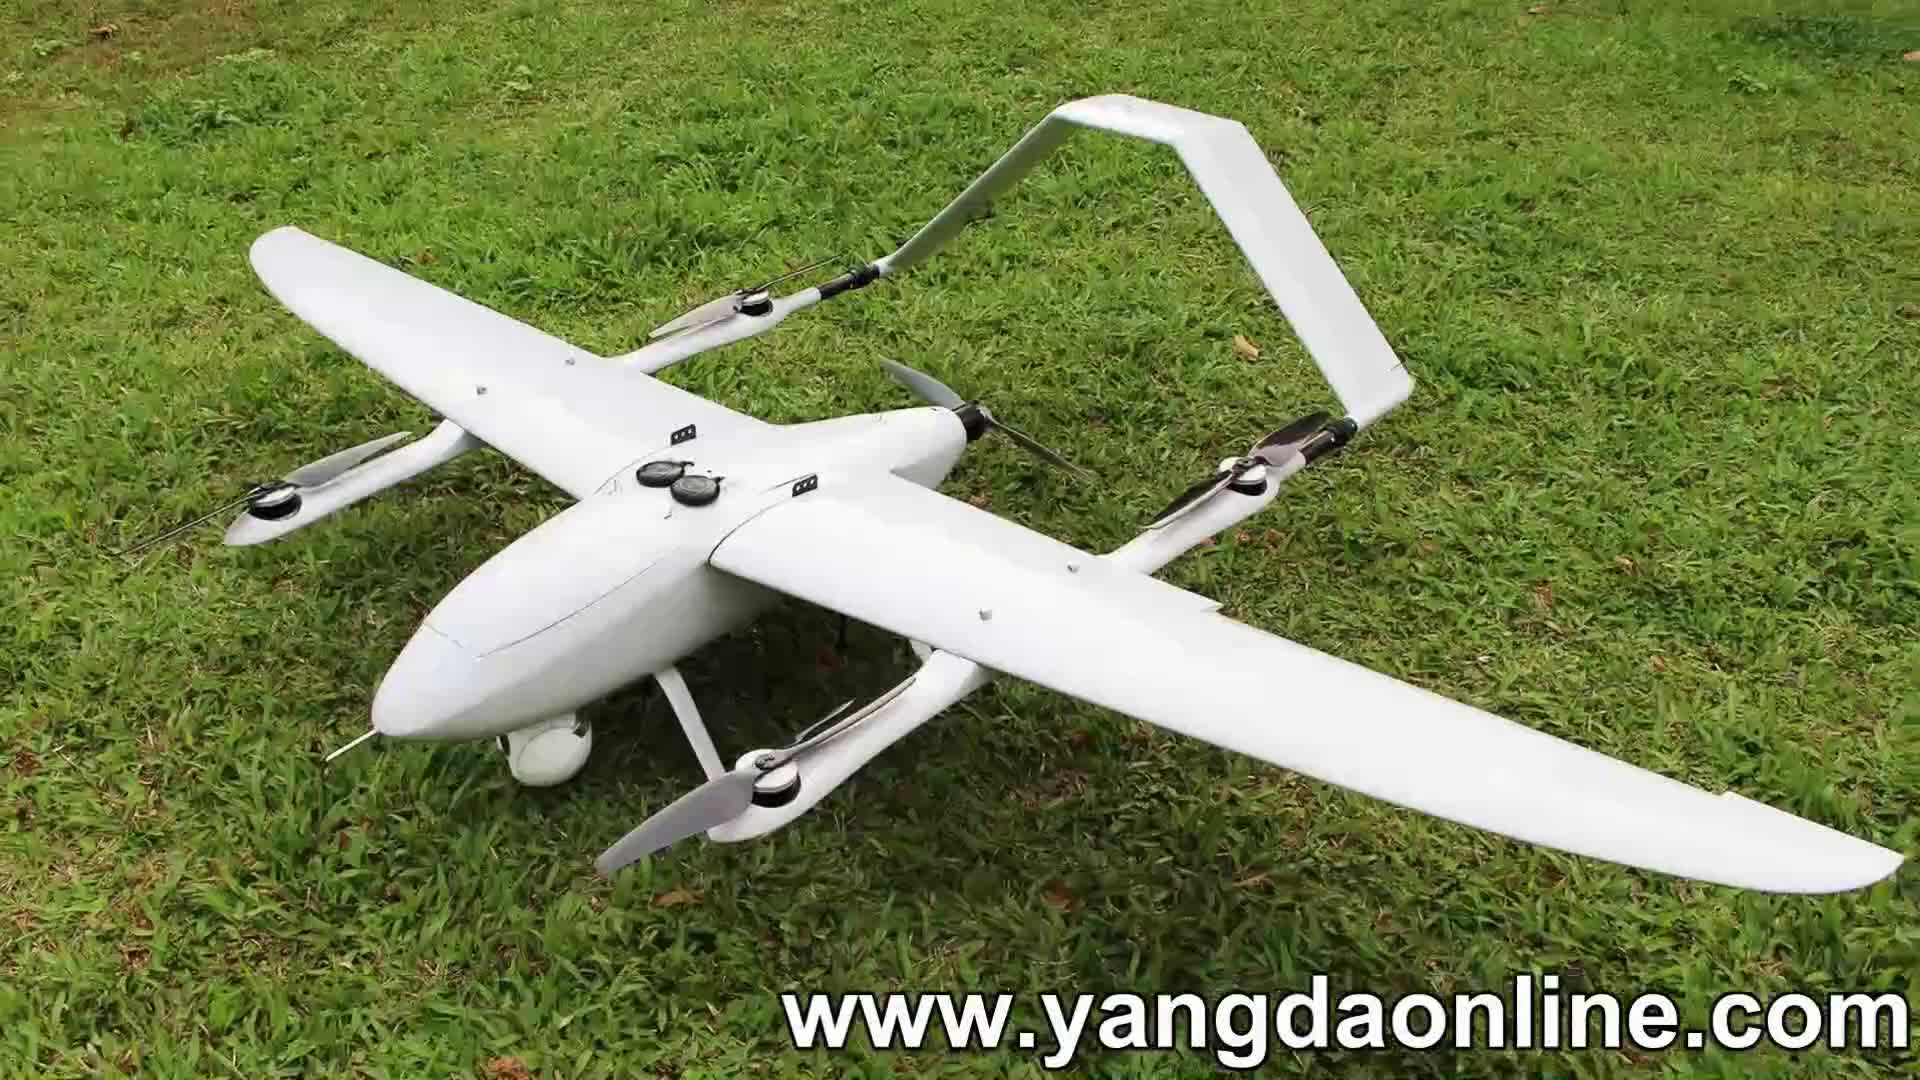 Fixed-wing Vtol Uav For Surveillance And Mapping Long Range Drone With Zoom  Camera And Gps - Buy Uav Engine,Vtol Uav,Vtol Drone Product on Alibaba com